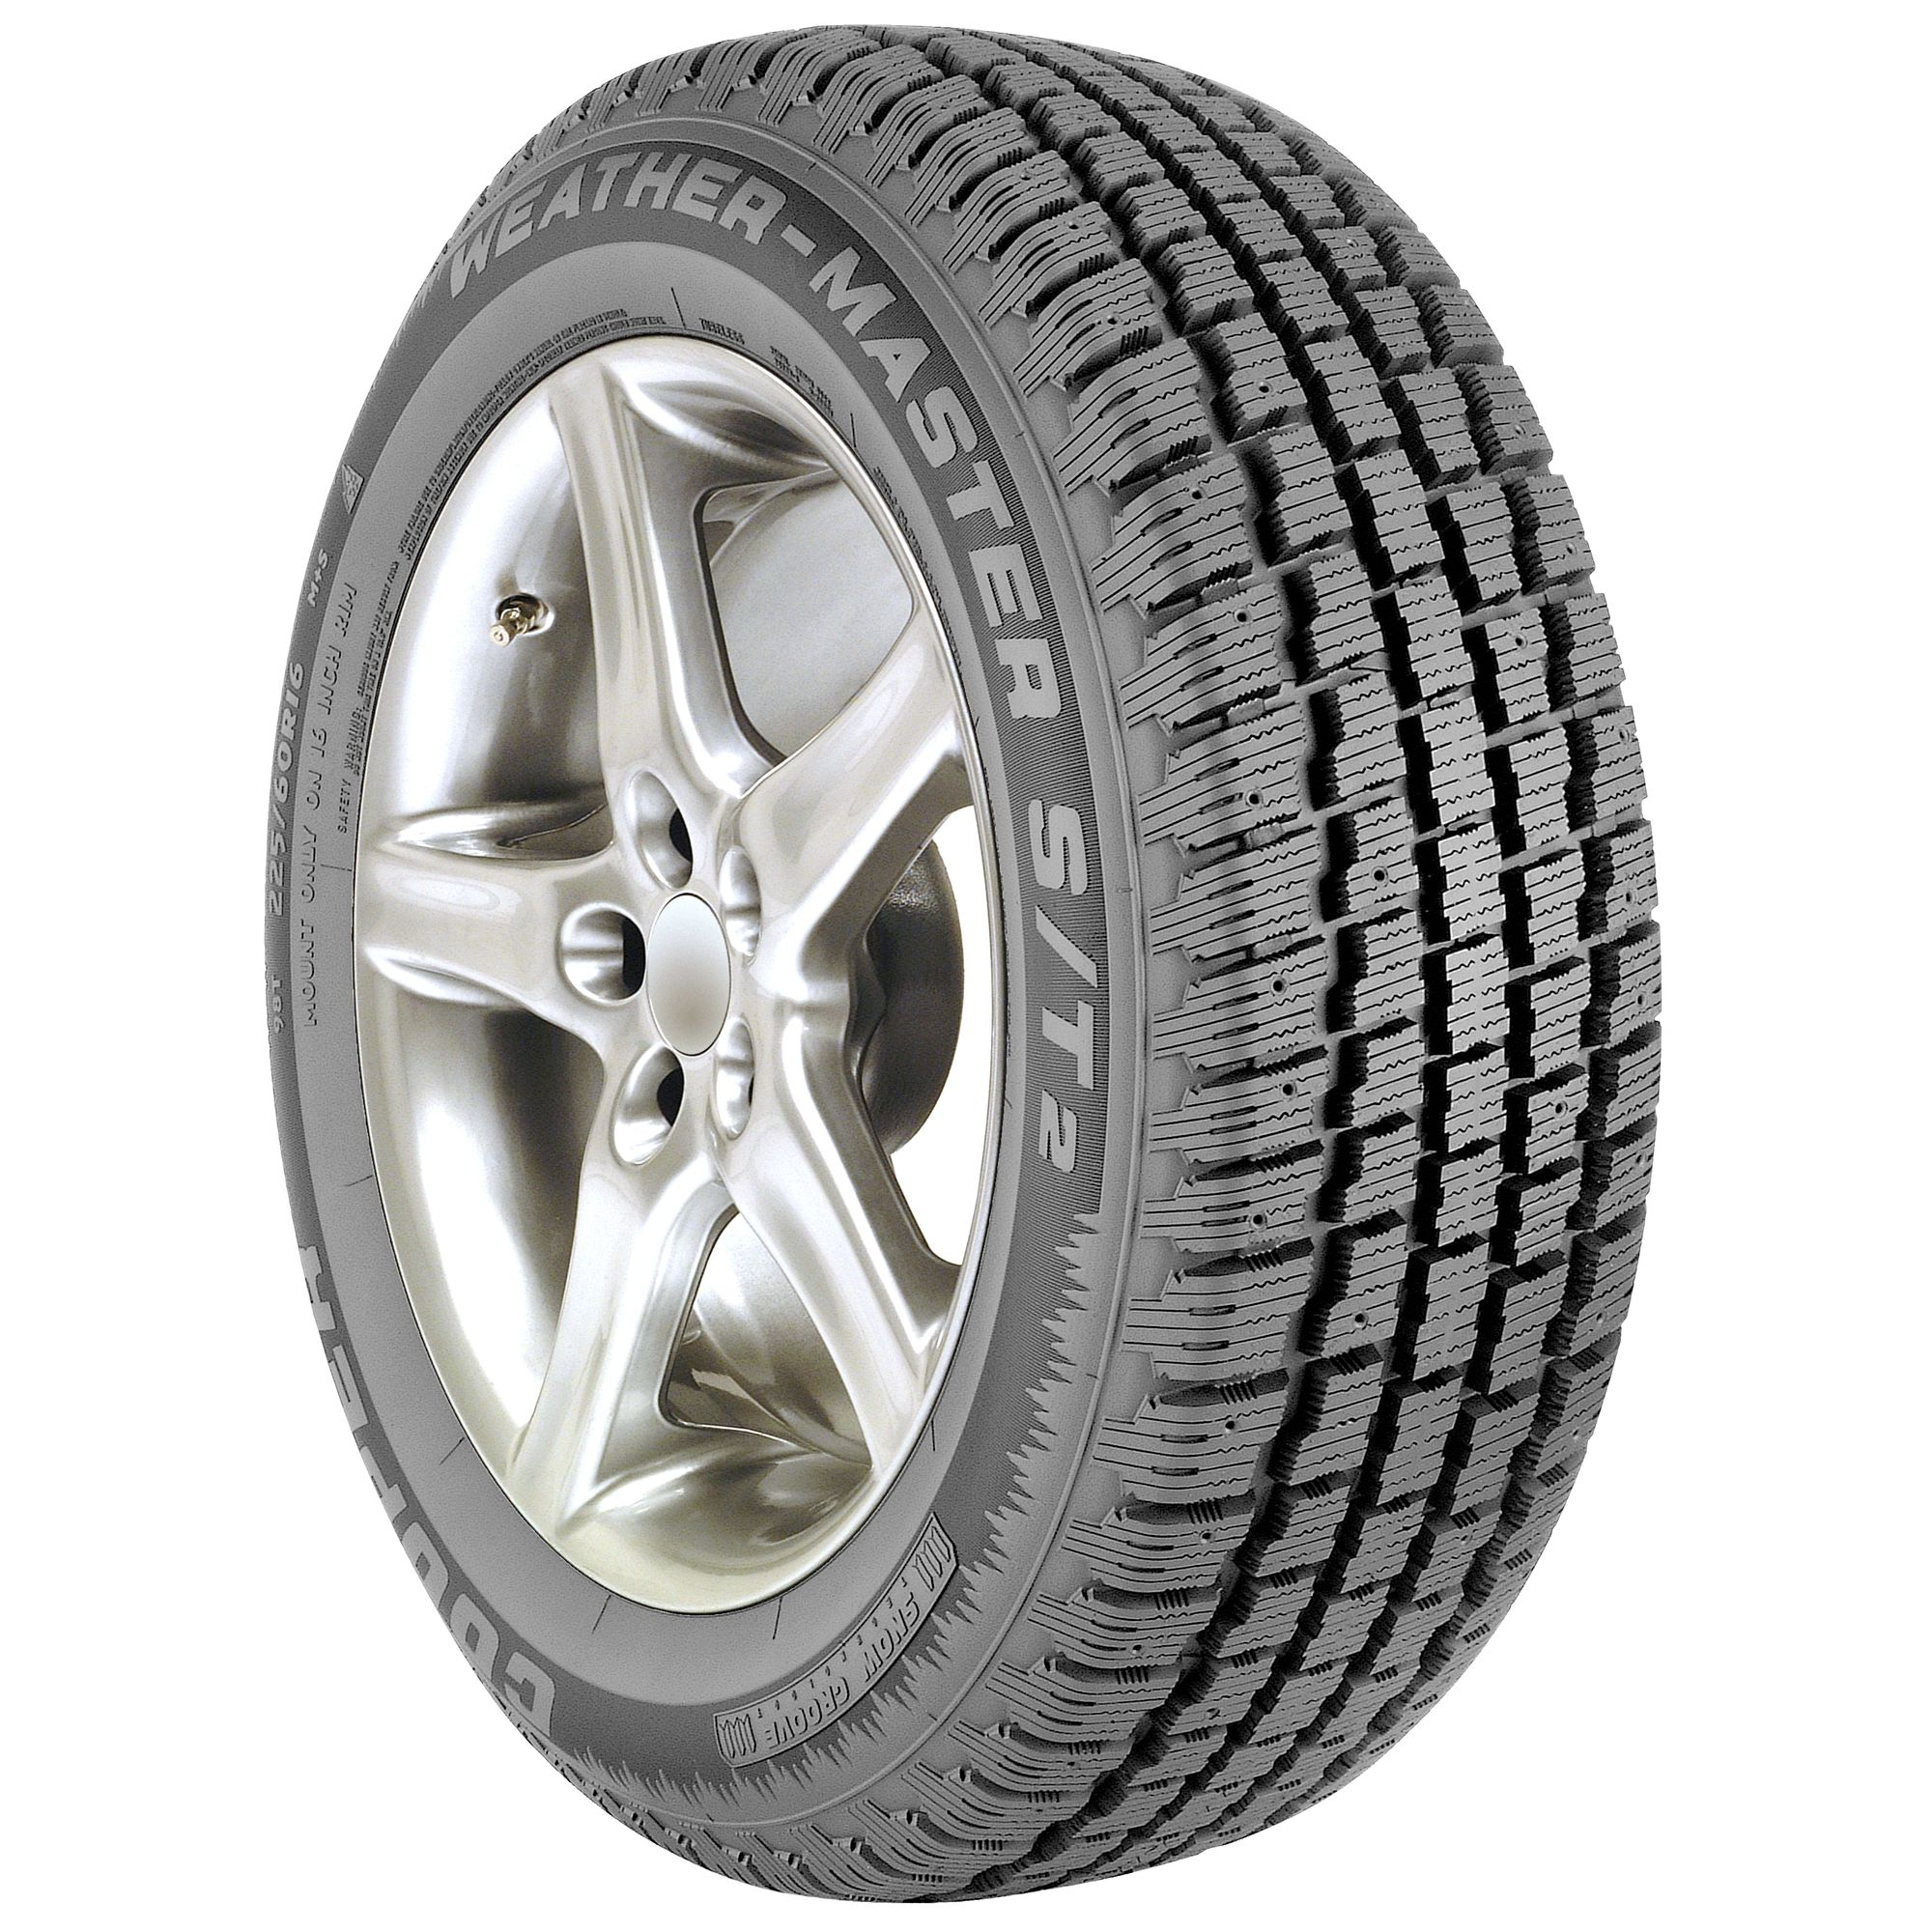 Cooper Weathermaster S/T2 Tire- 195/75R14 92S BW - Winter Tire